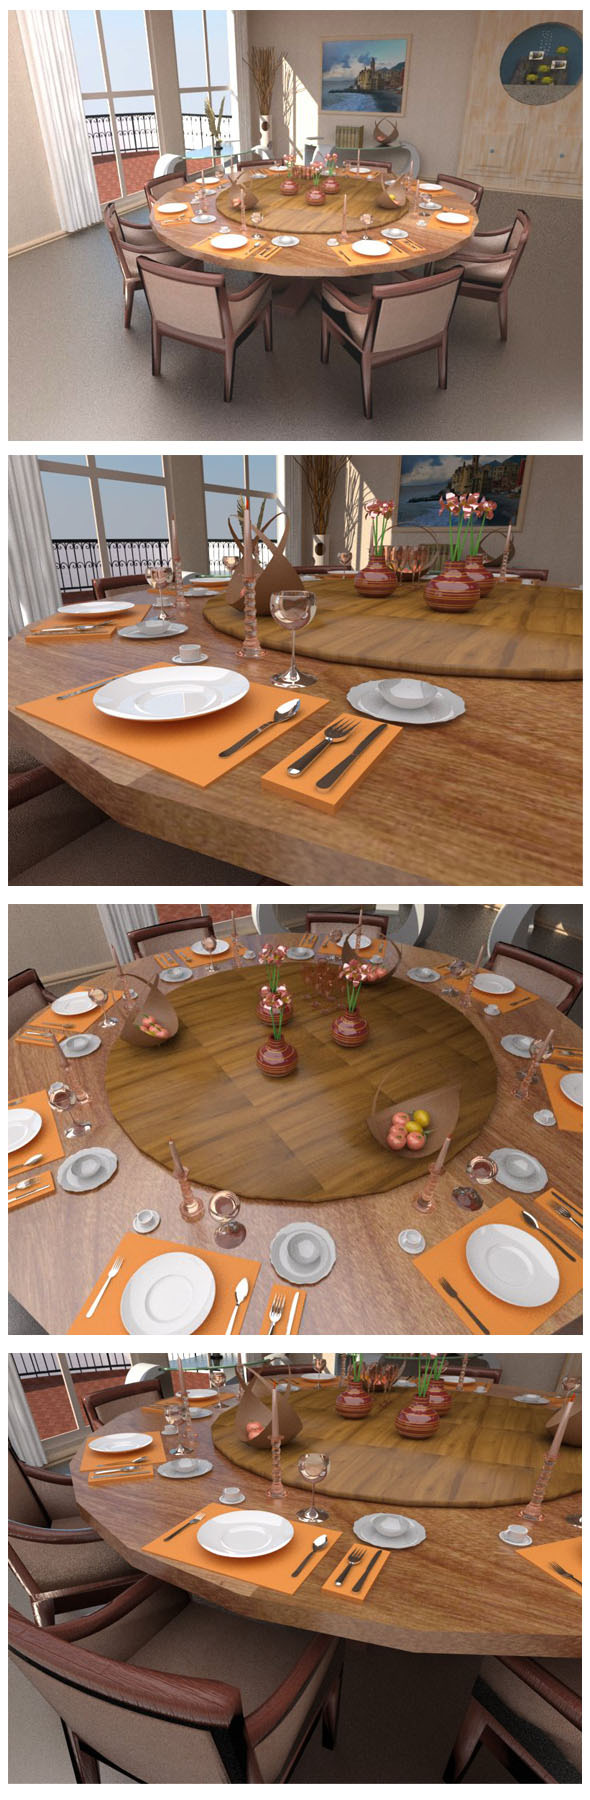 Dinner table set - 3DOcean Item for Sale